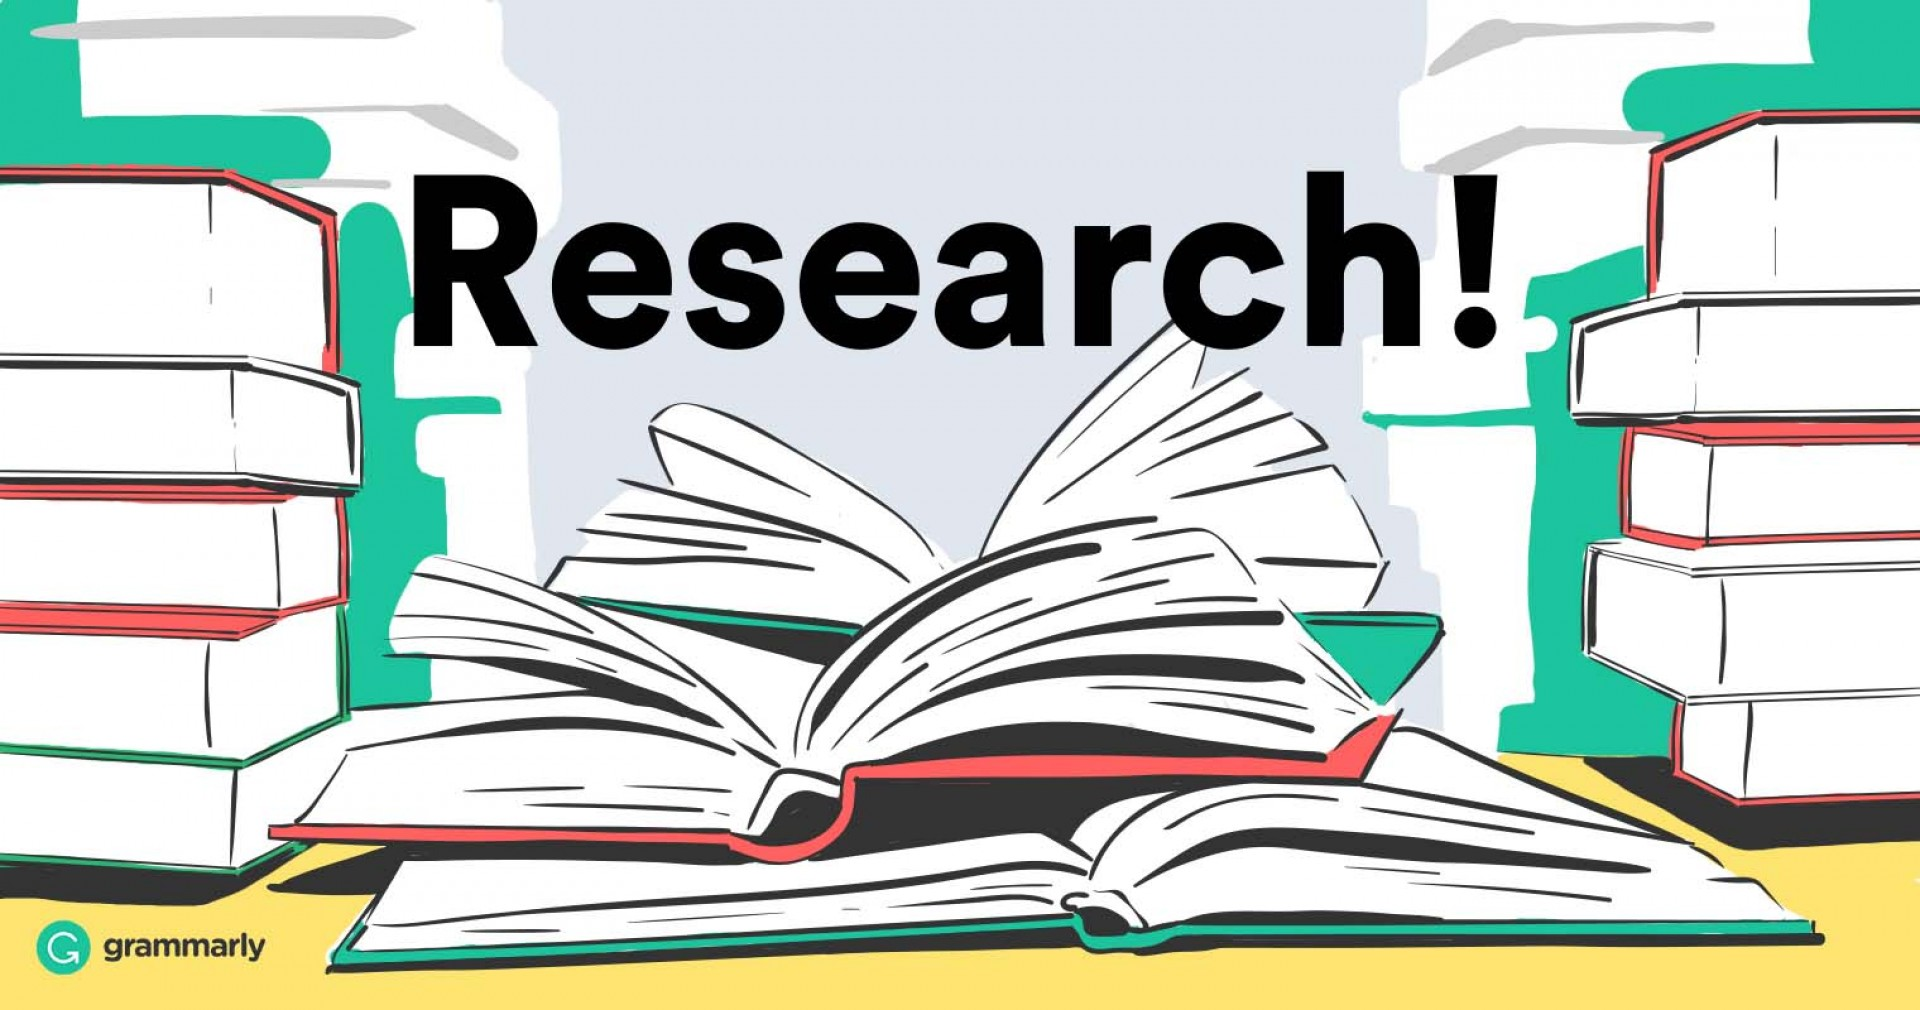 003 Research Paper Help Me Write Wonderful A My Introduction For Free 1920